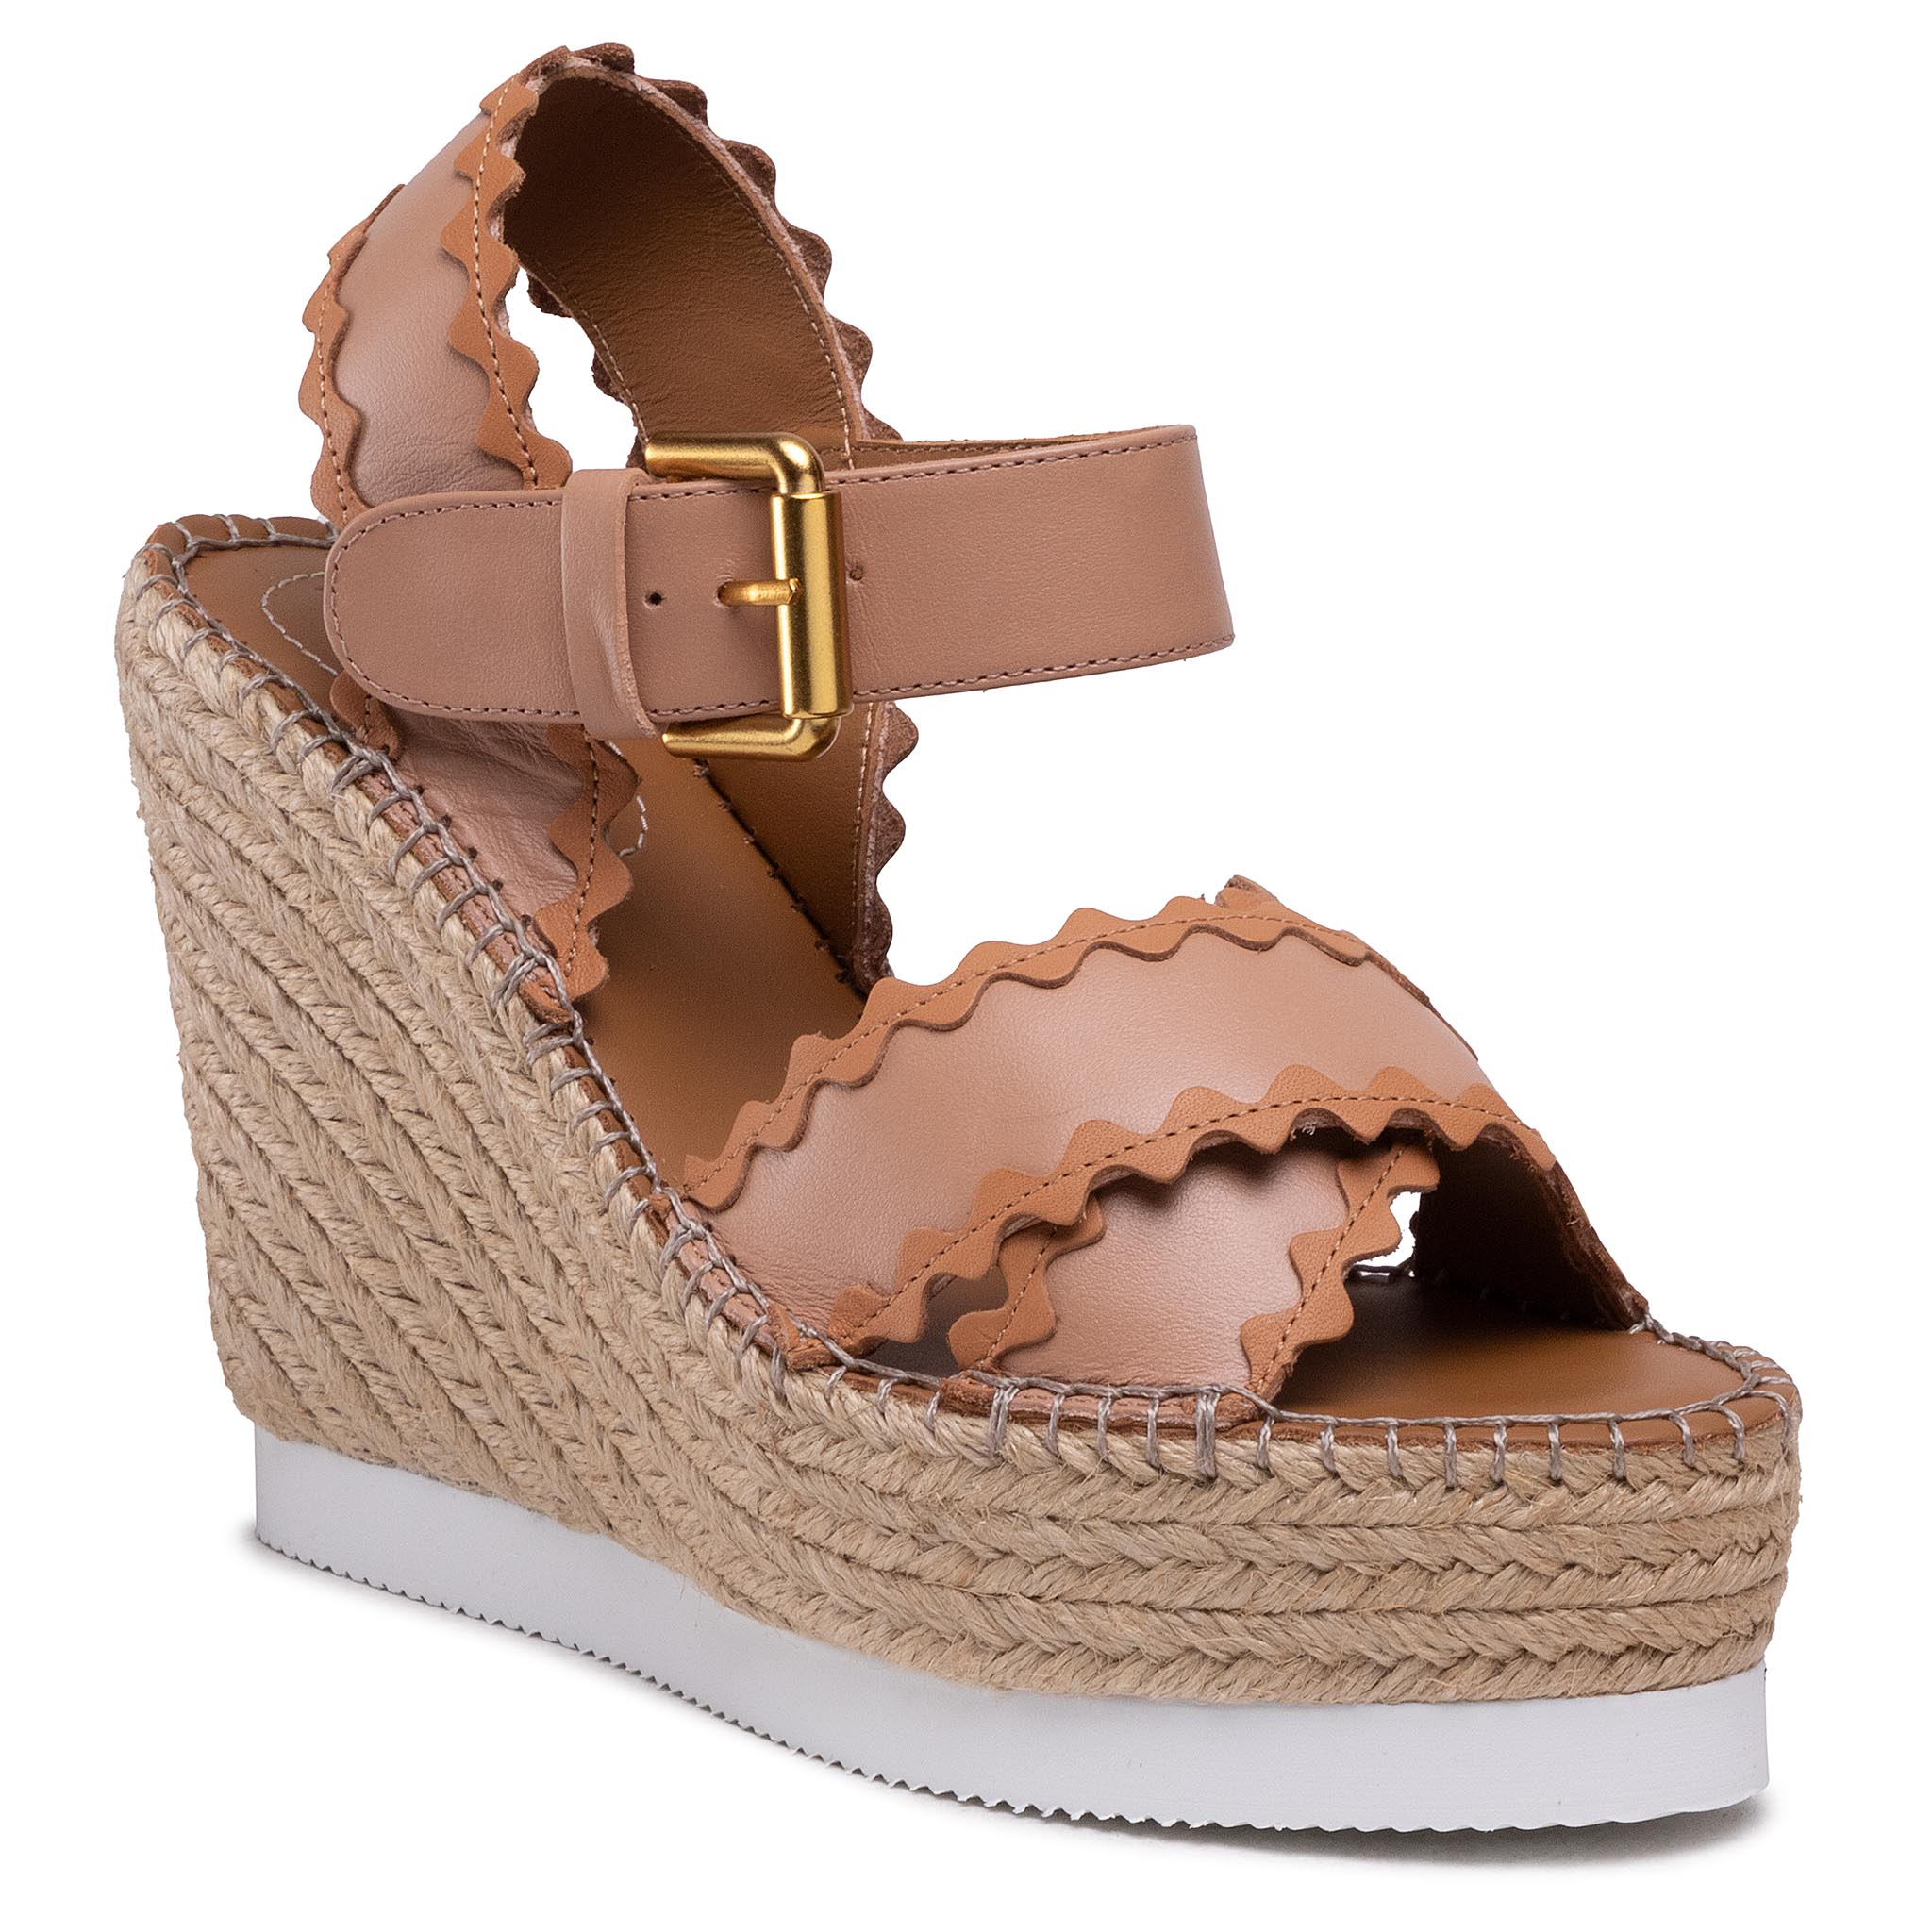 Image of Espadrillas SEE BY CHLOÉ - SB36113A Light Rose/Nat Calf 533